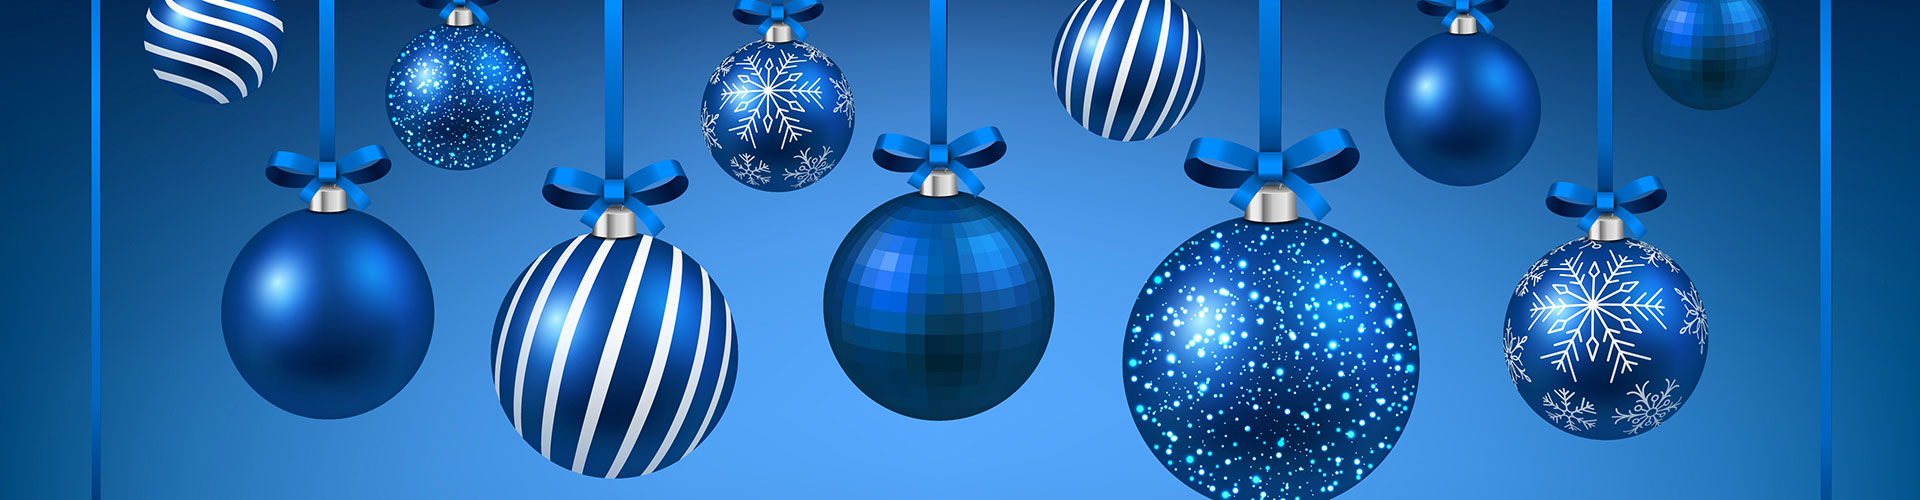 Christmas offers @ Mike Varney Physiotherapy